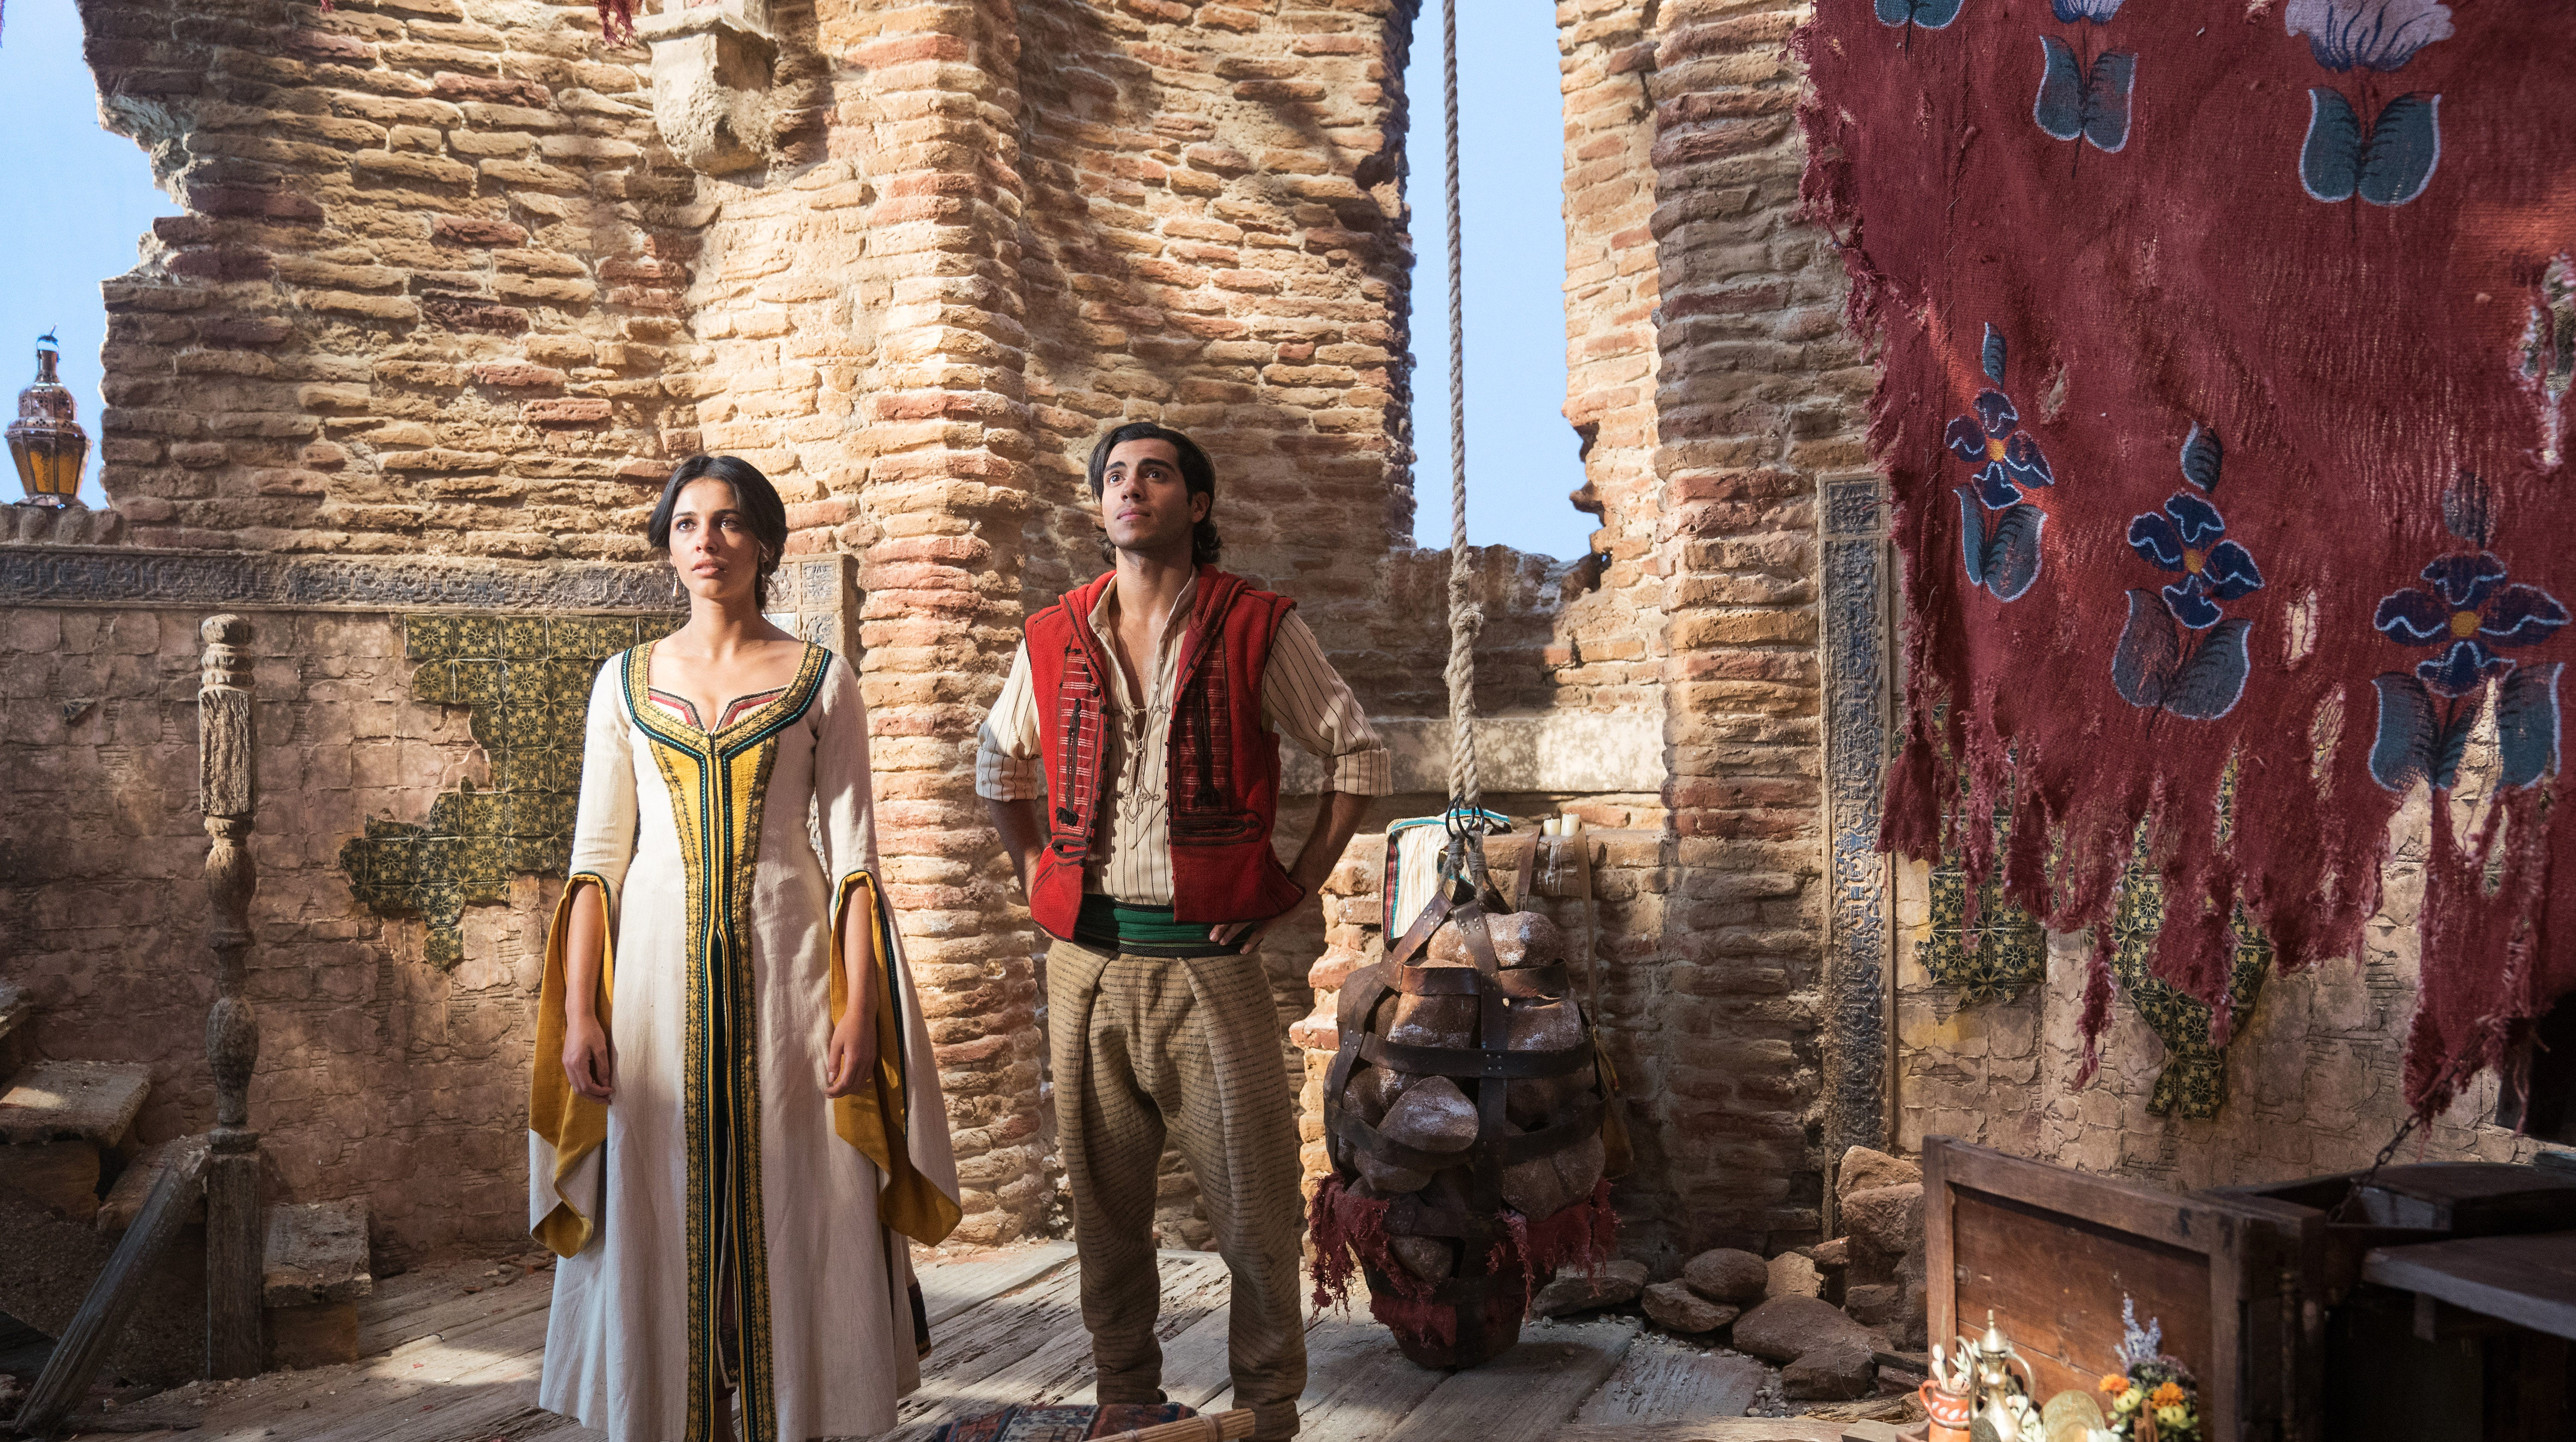 Naomi Scott is Jasmine and Mena Massoud is Aladdin in Disney's live-action ALADDIN, directed by Guy Ritchie.